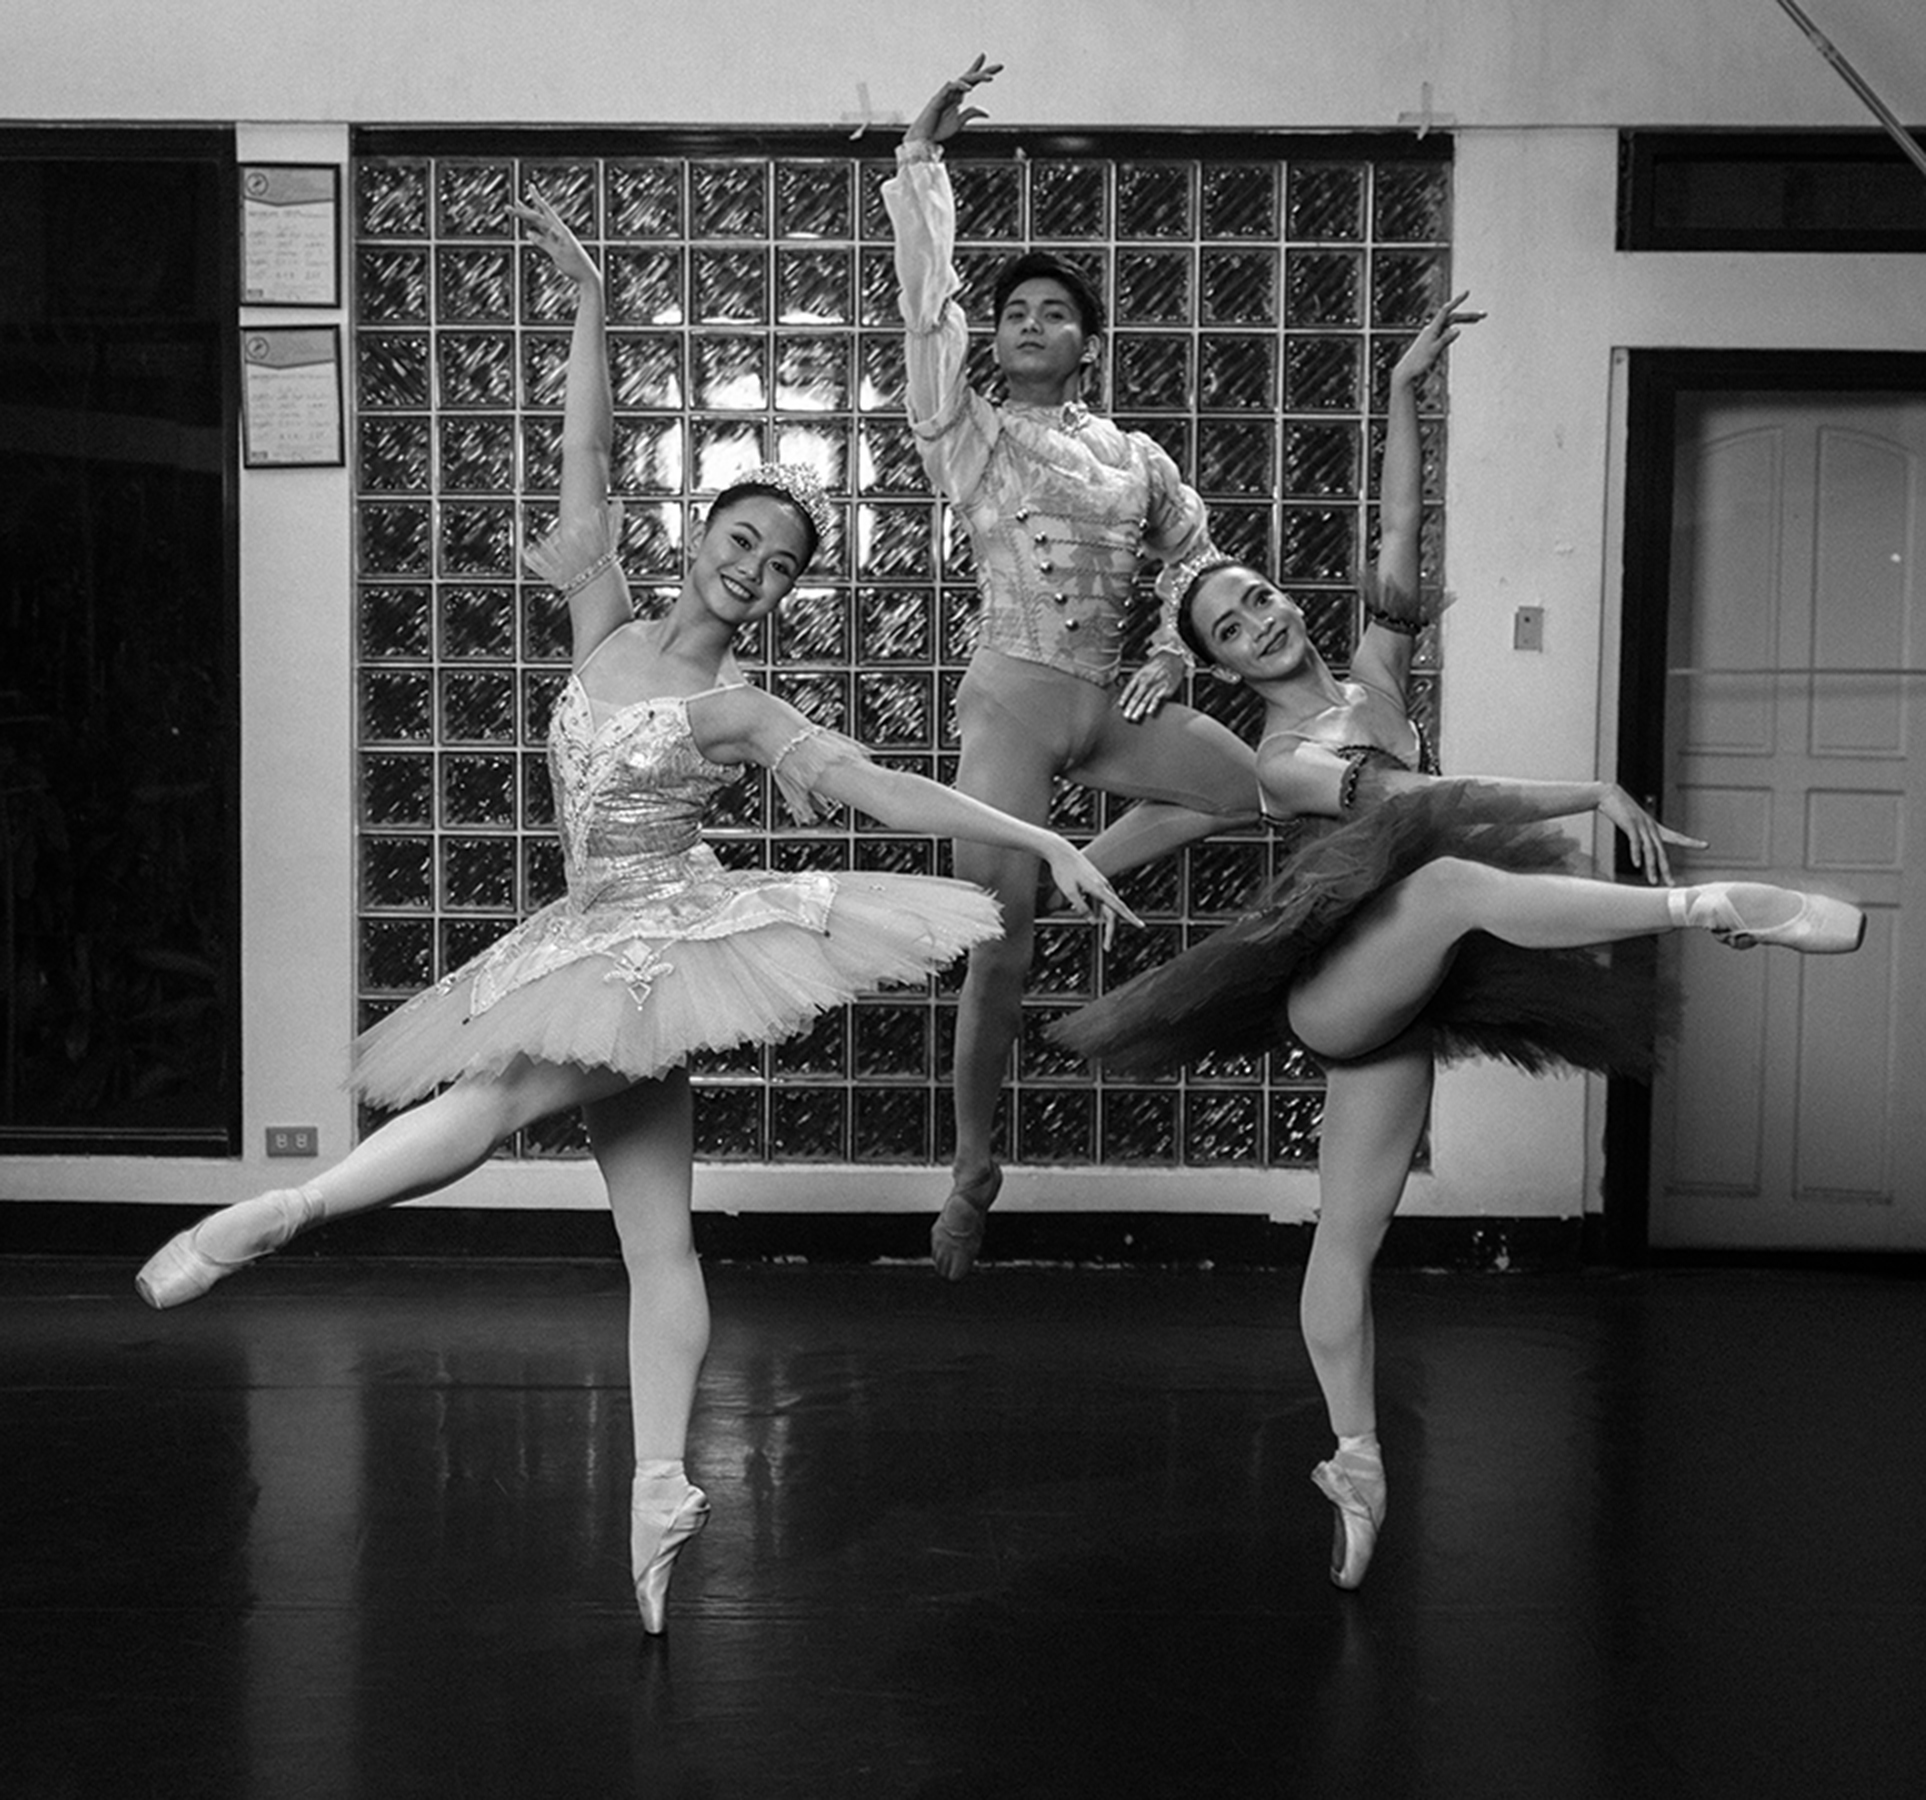 Jessa Balote, Jamil Montibon and Rissa May Camaclang started out as Project Ballet Futures scholars and are now BM company artists. Photo by G-nie Arambulo